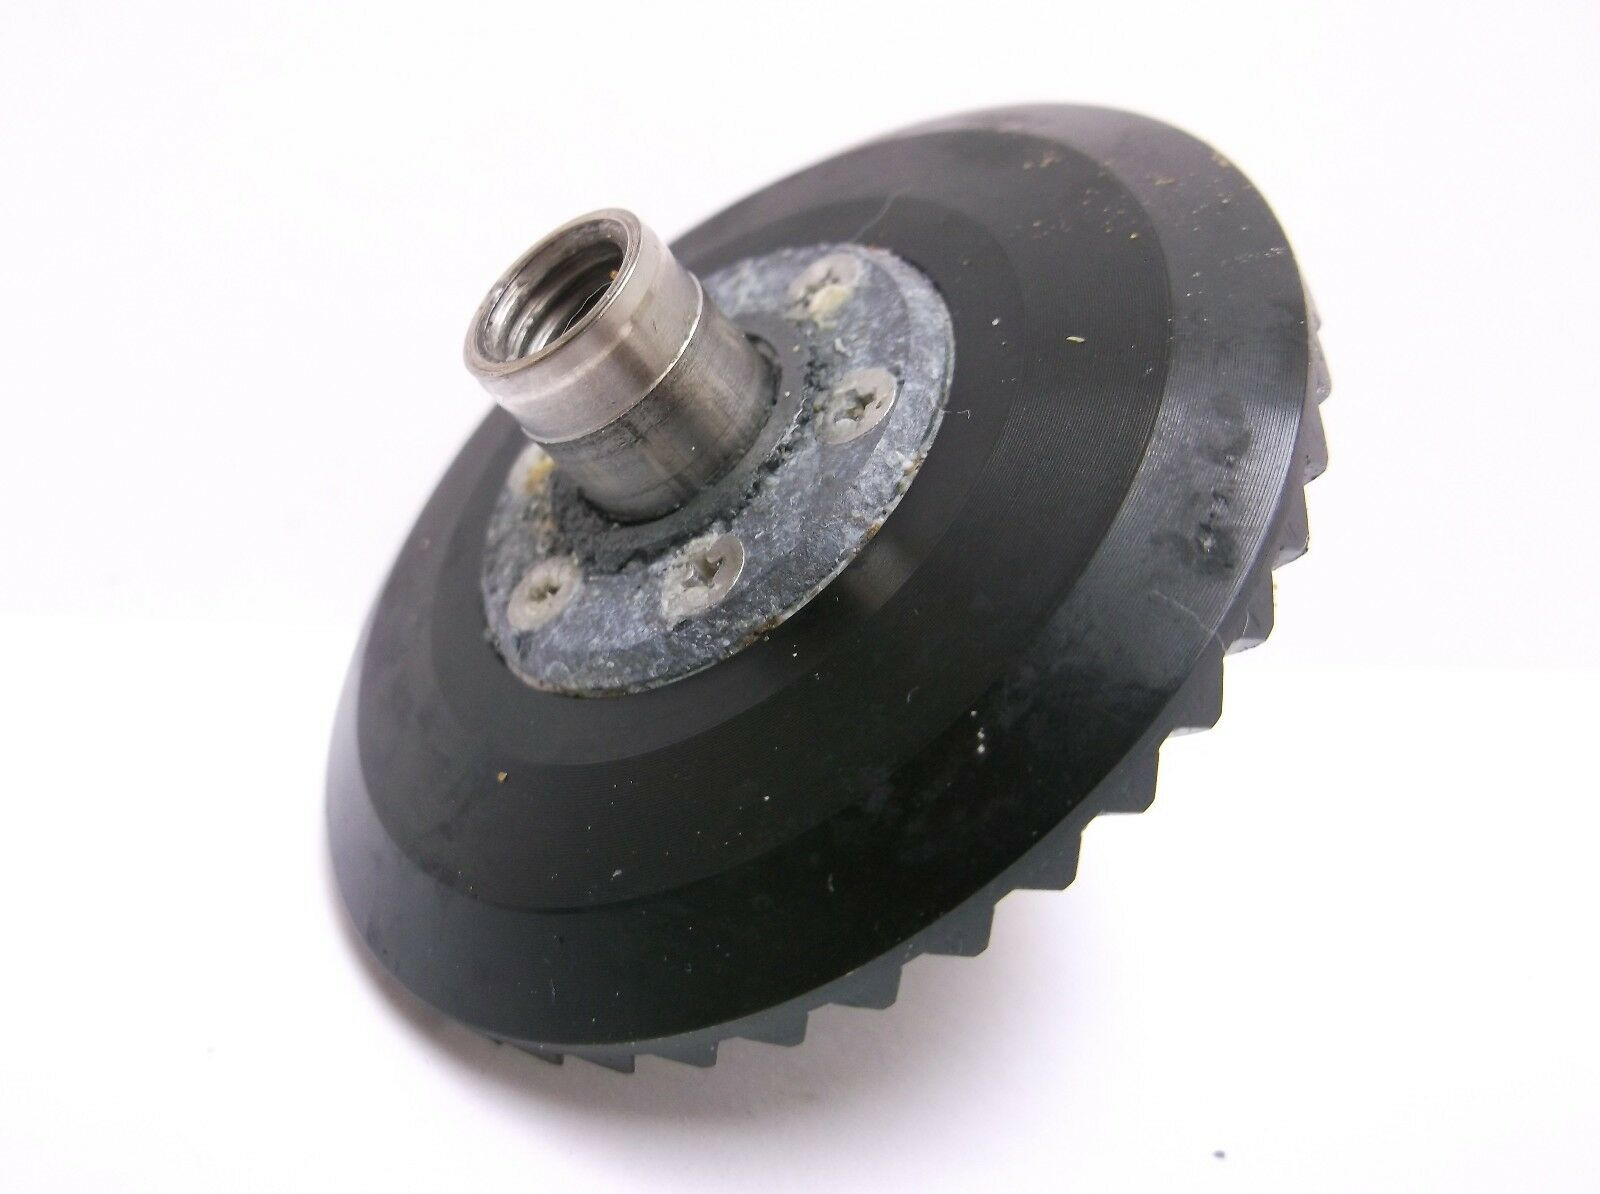 USED SHIMANO SPINNING REEL PART - Stella 16000F - Drive Gear